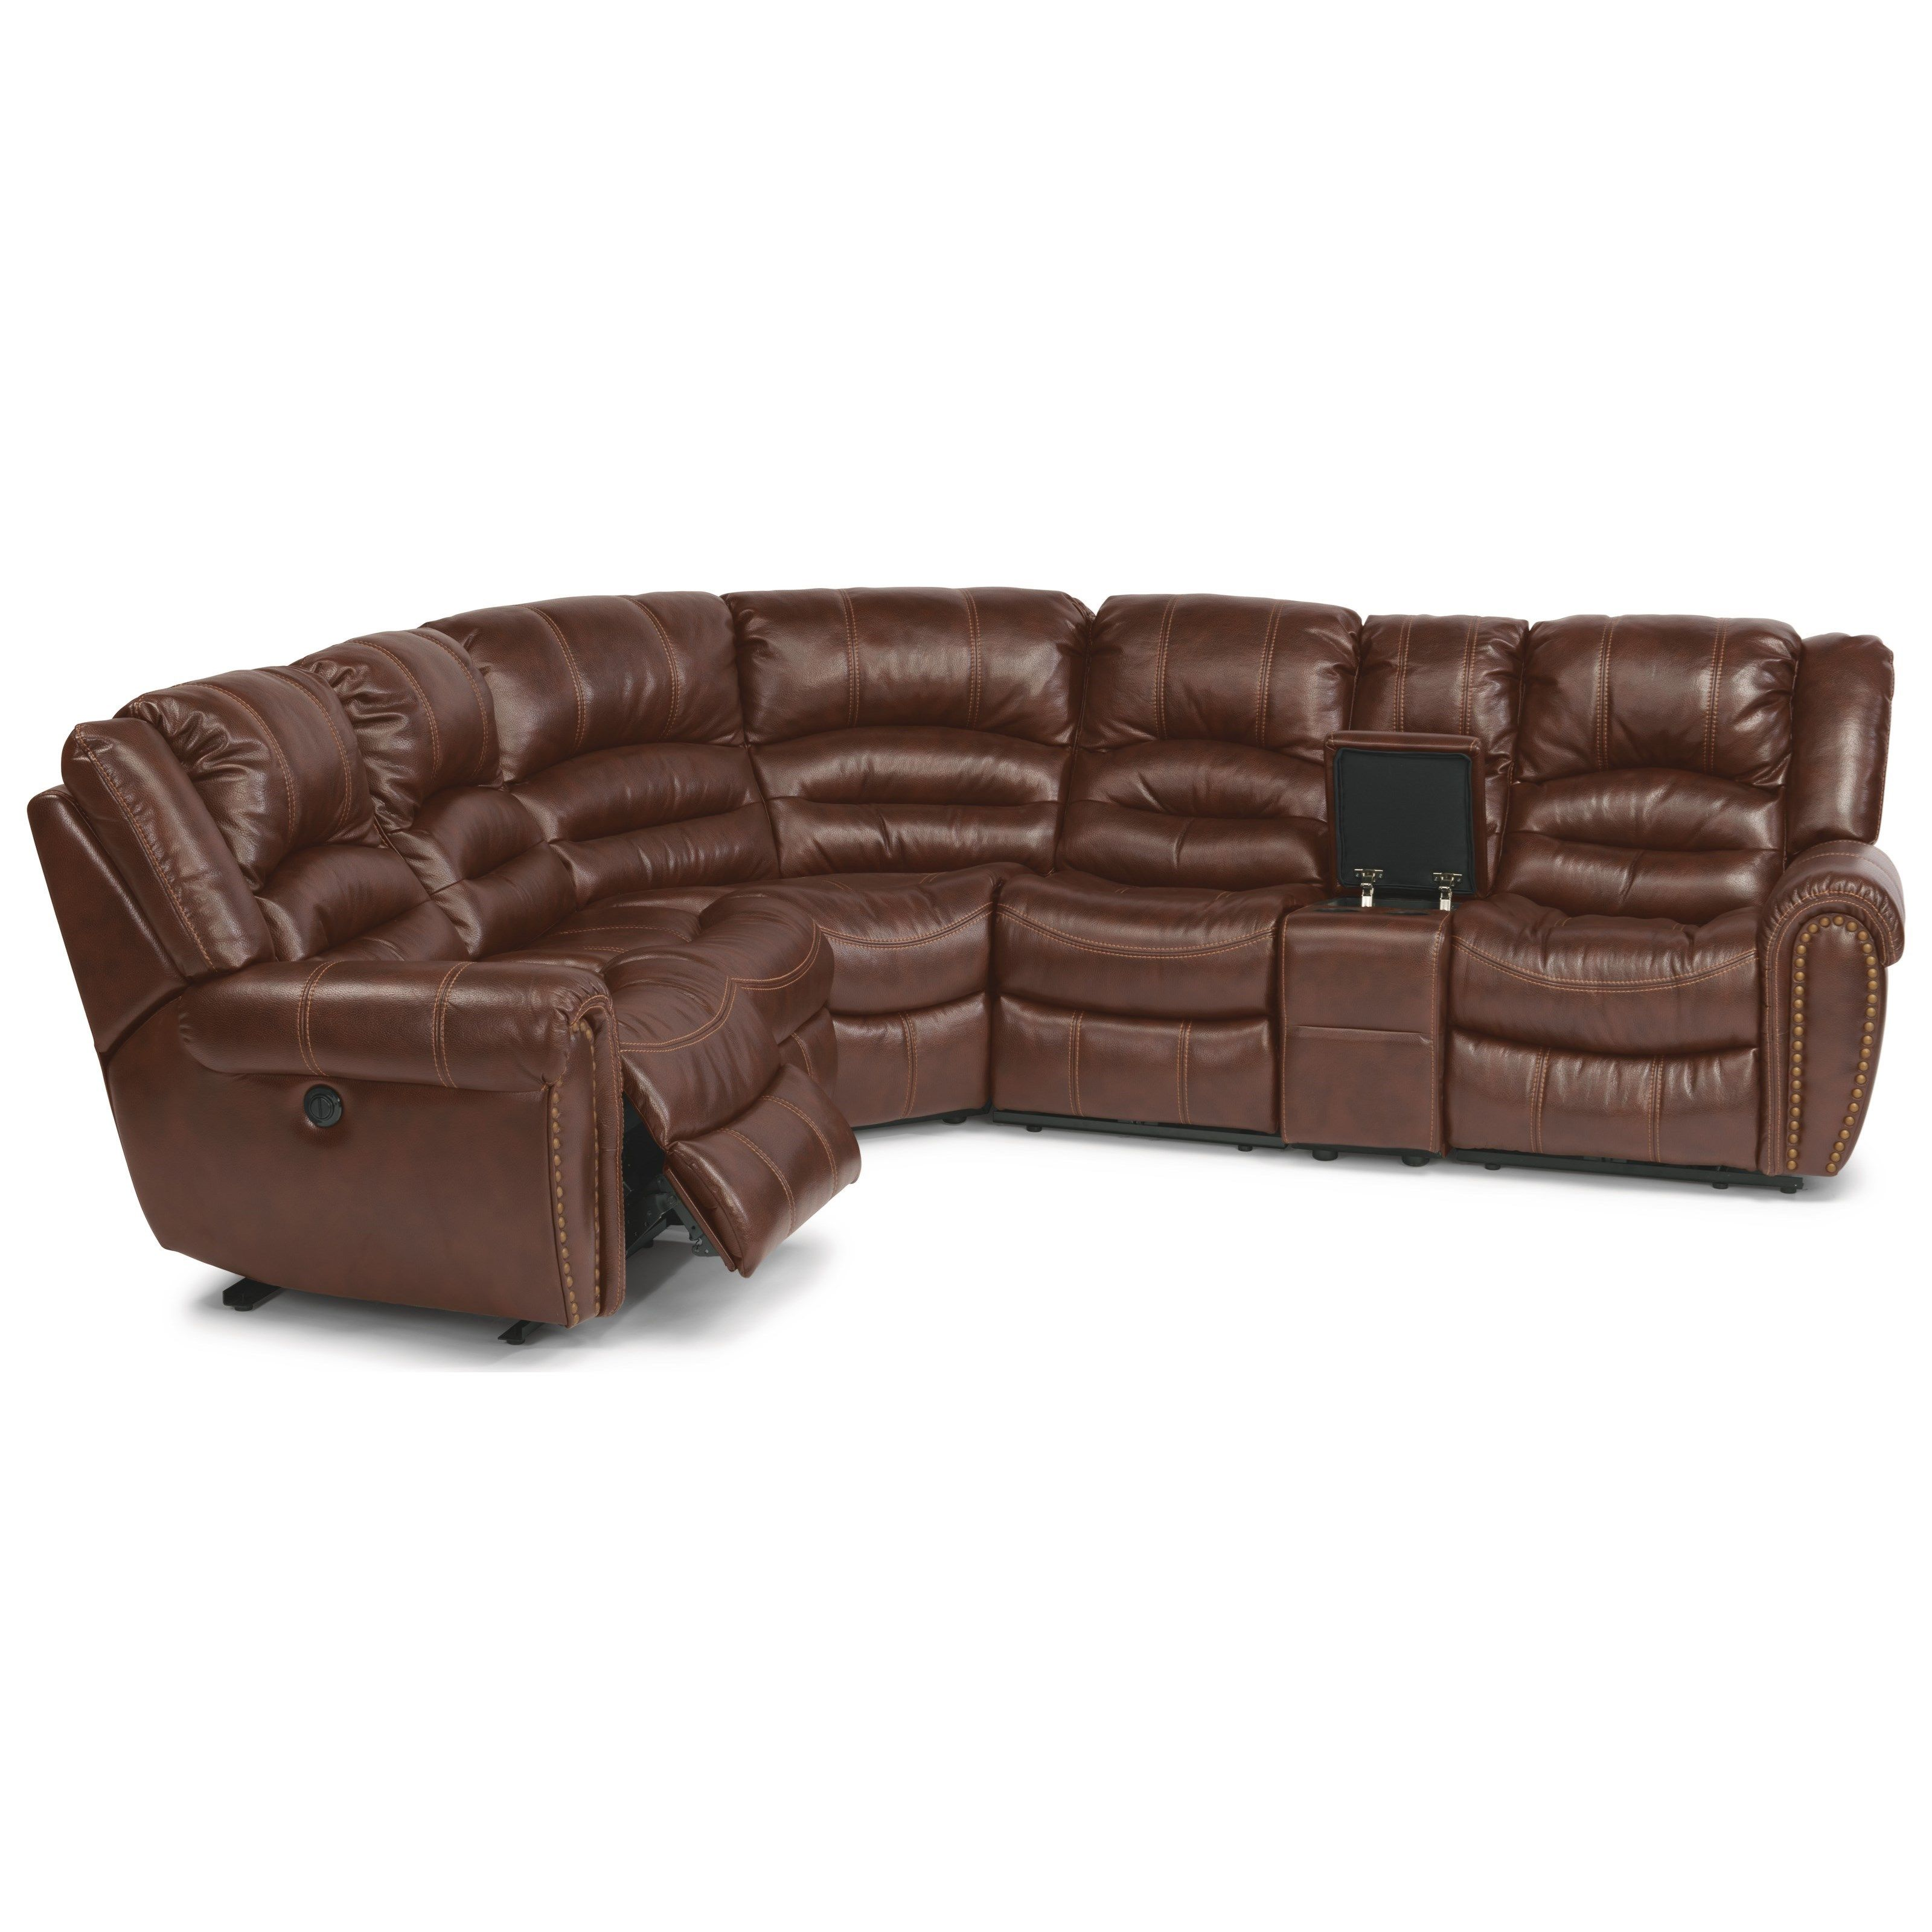 American Superstore Furniture Poplar Bluff Mo: Crosstown Six Piece Power Reclining Sectional Sofa By